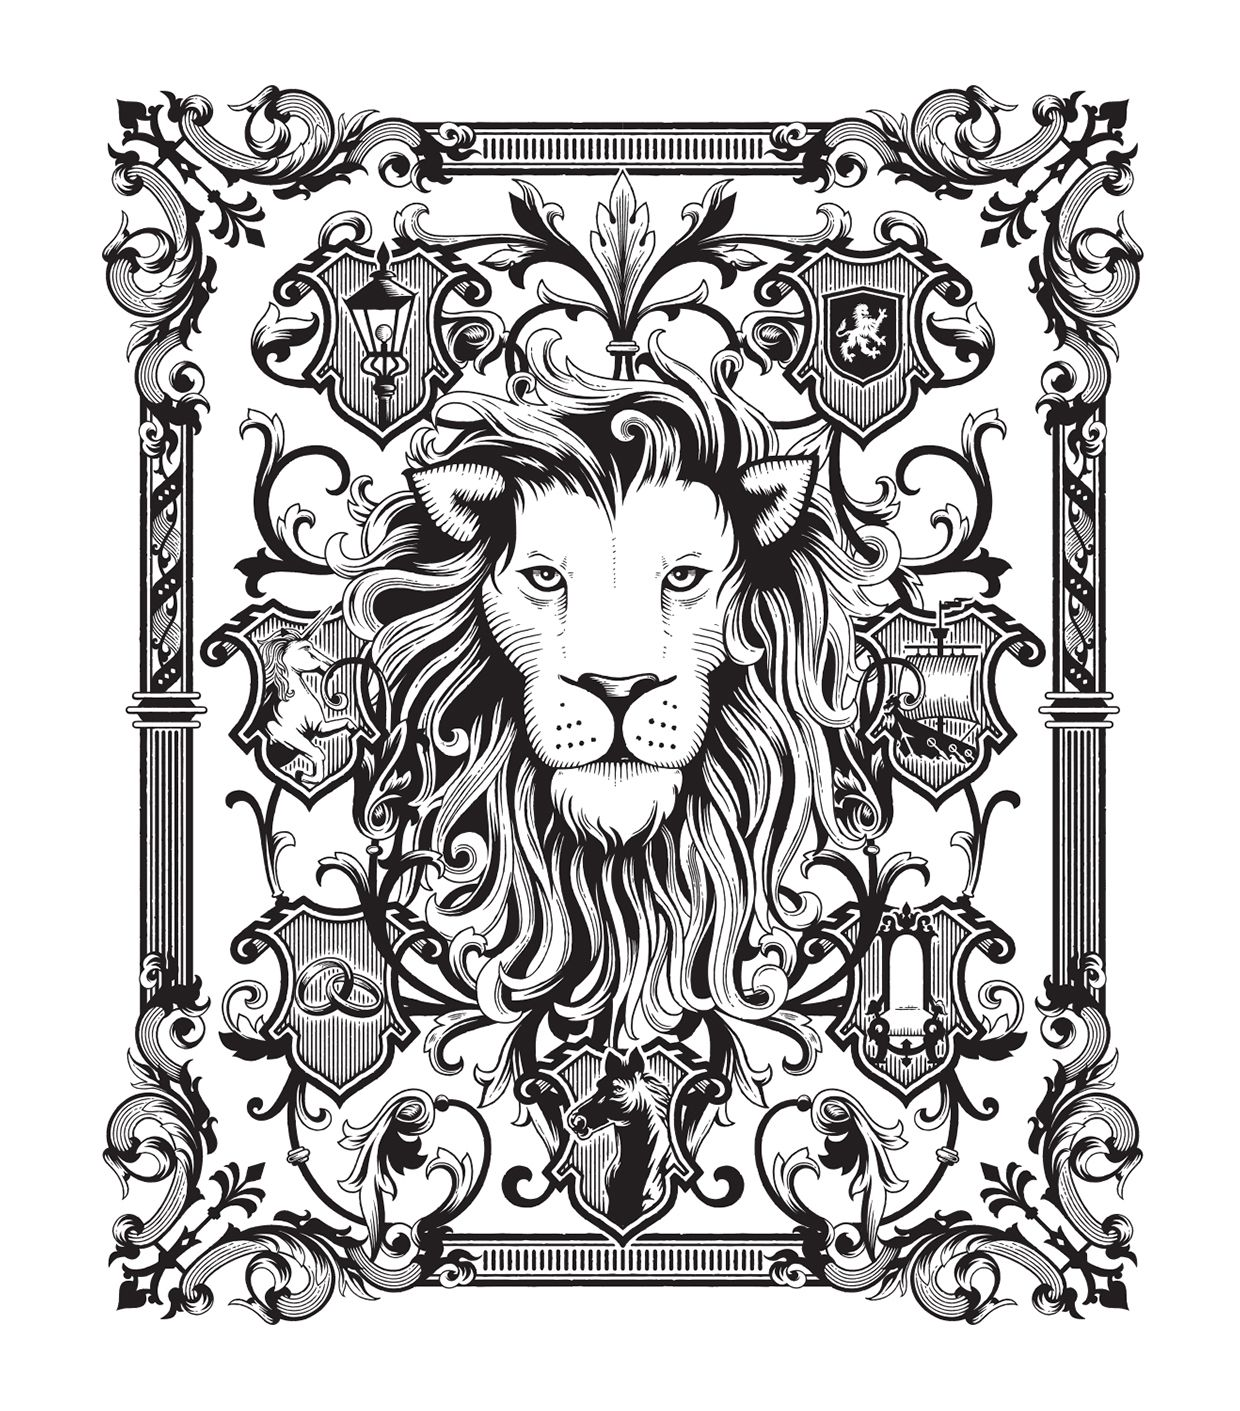 https://www.behance.net/gallery/20897449/THE-CHRONICLES-OF-NARNIA ...